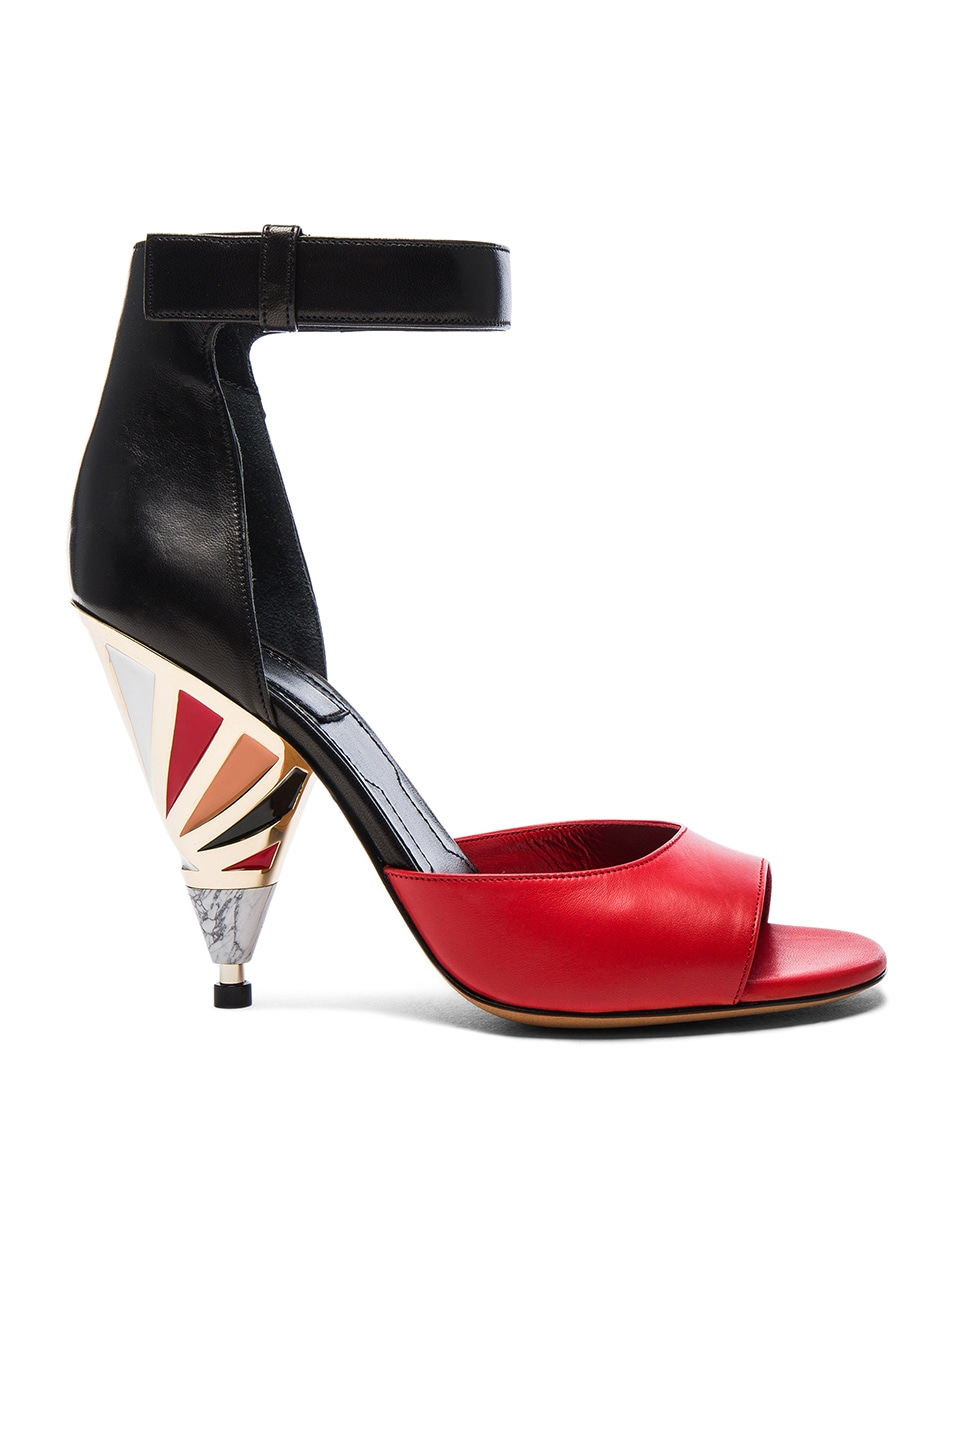 Image 1 of Givenchy Leather Multicolor Heels in Black & Red